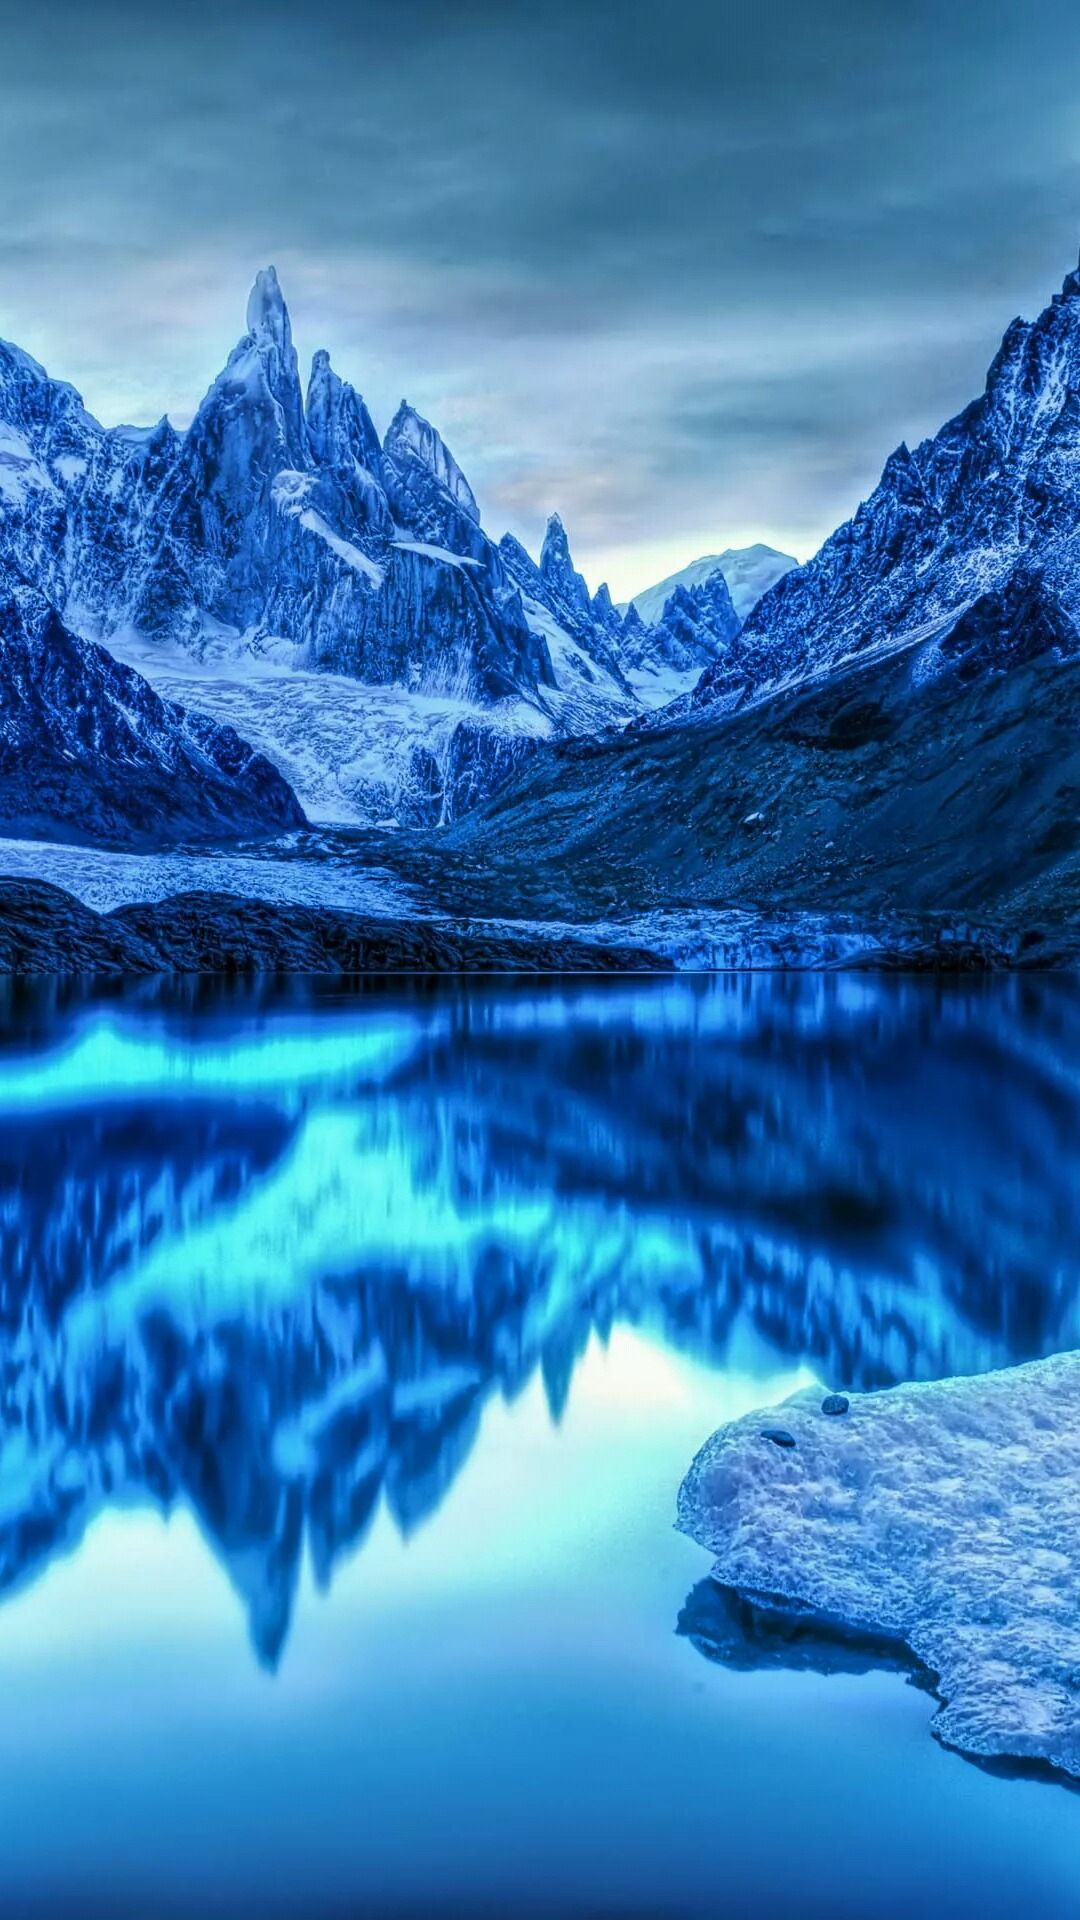 Download Ice Lake Samsung Galaxy J5 Hd Wallpapers Winter Cold Snow